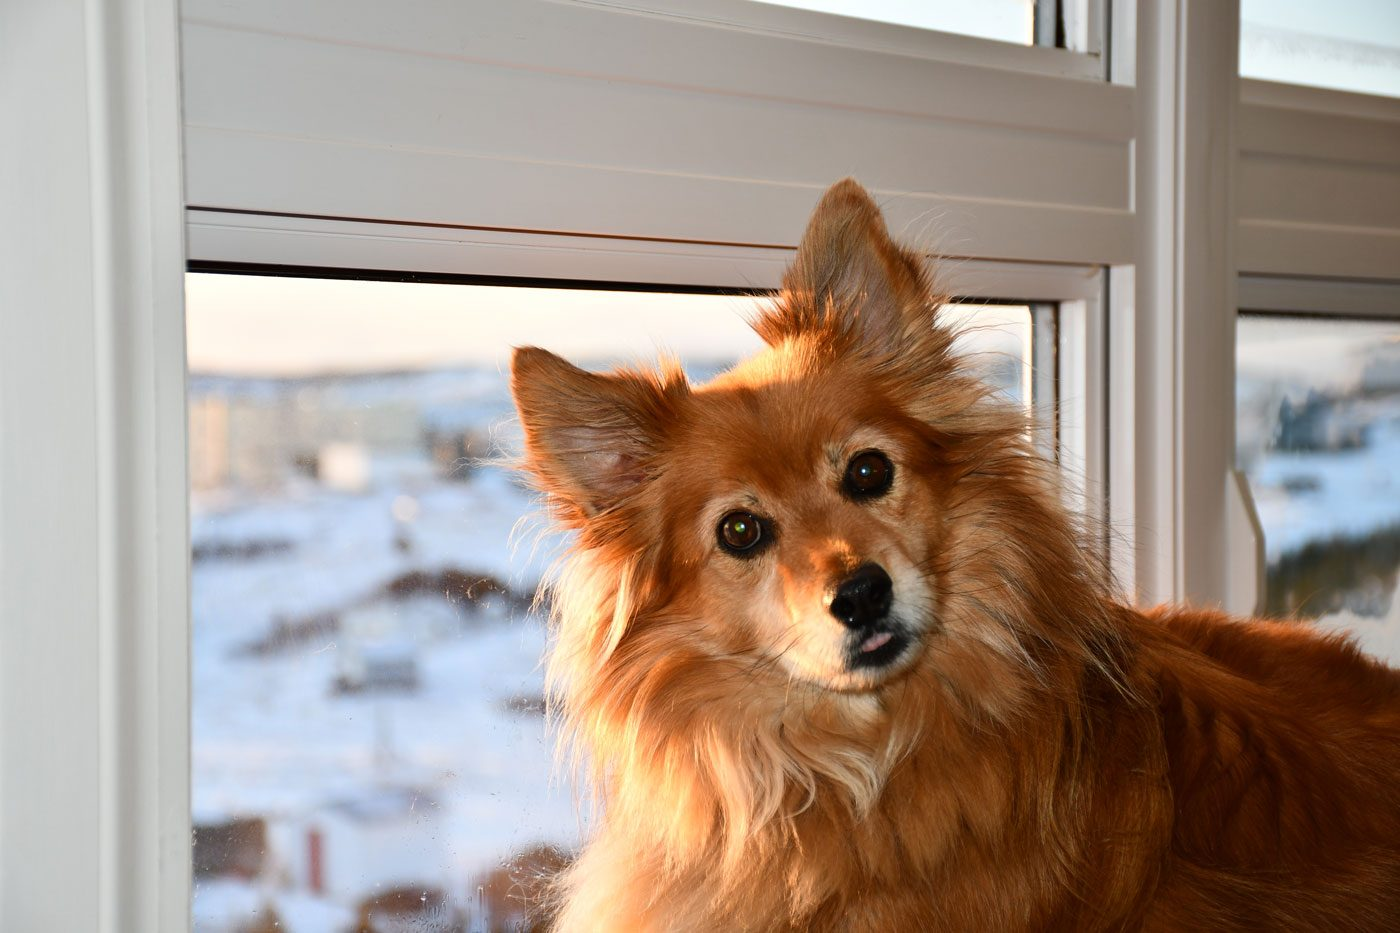 Cute dog posing next to window